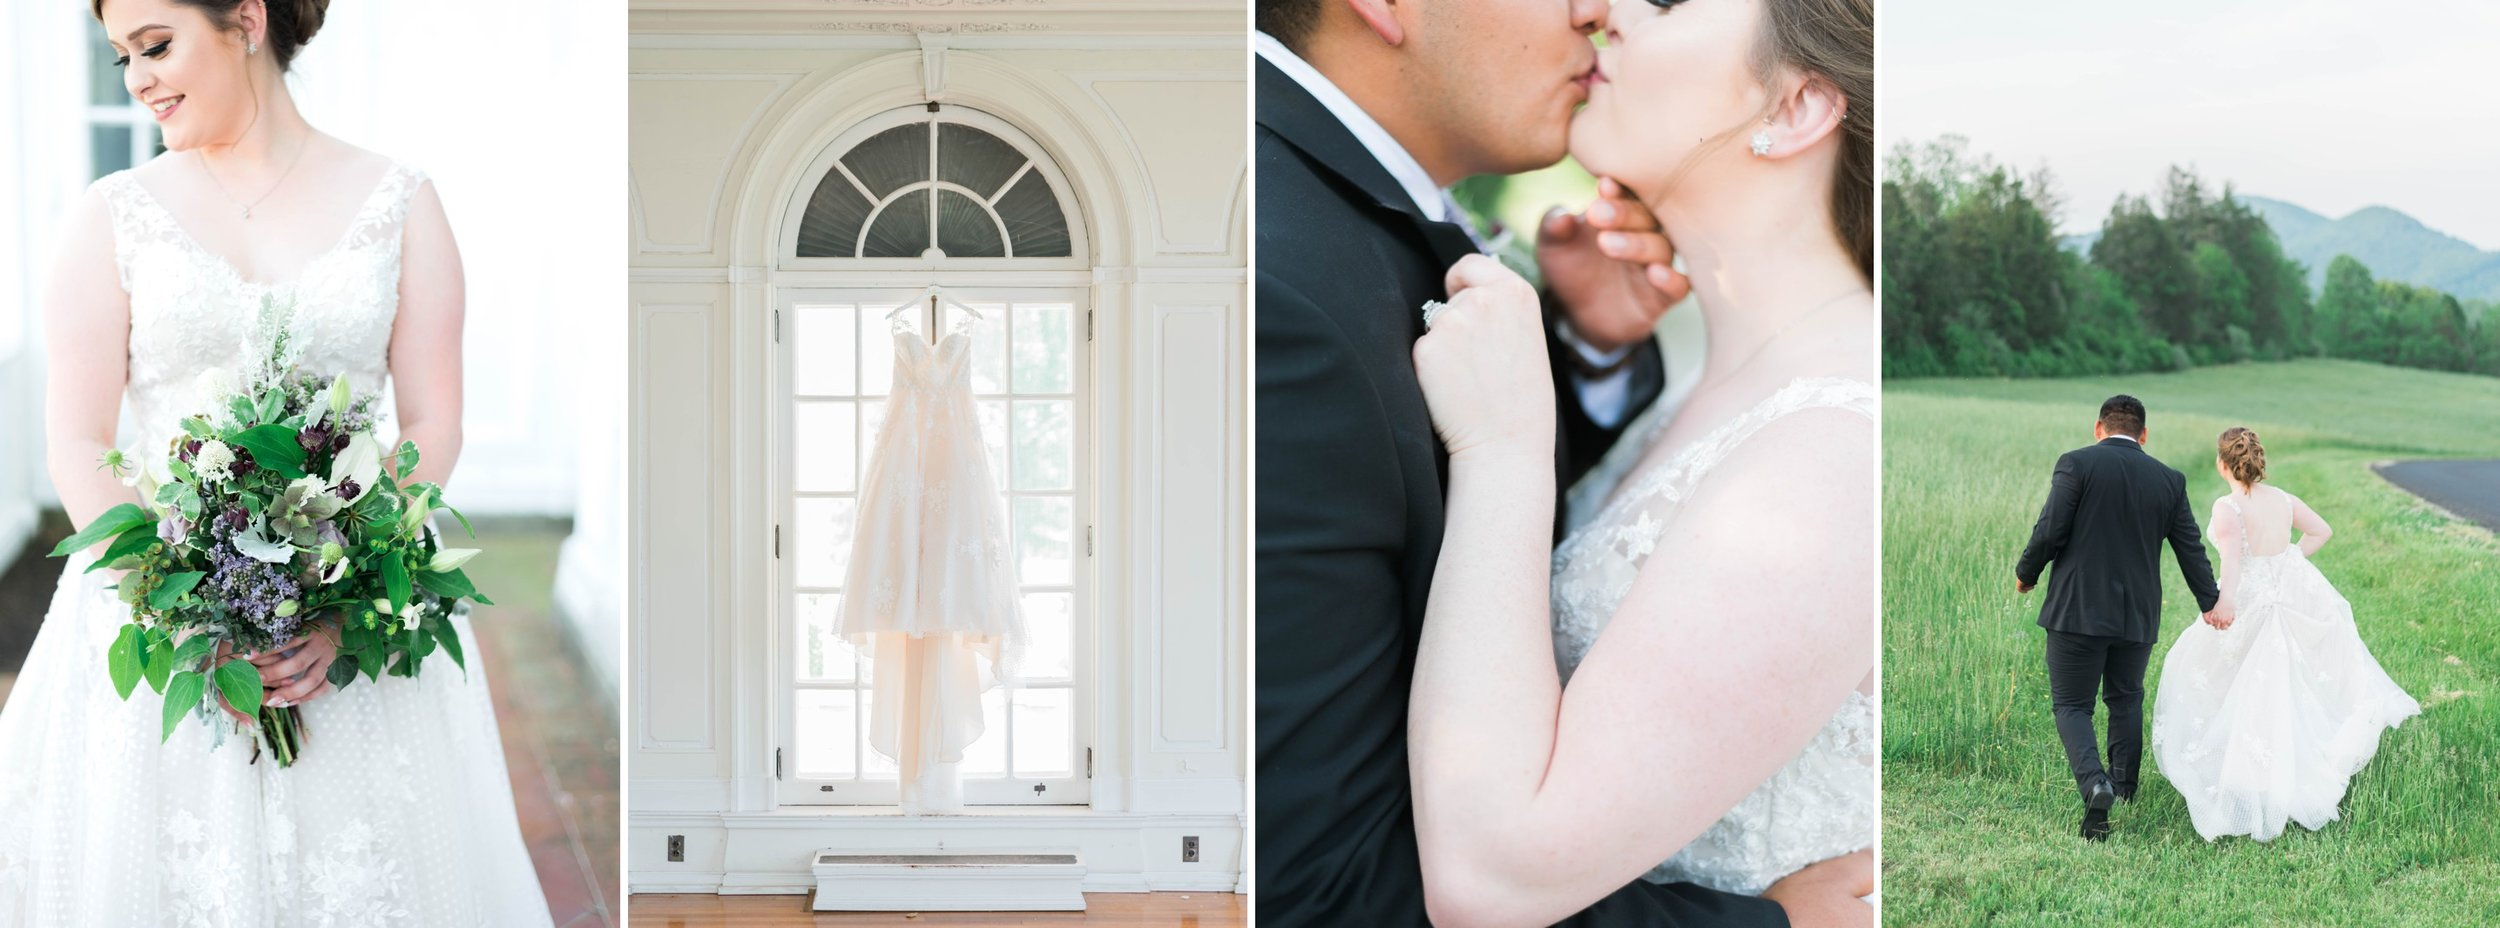 Jillian+Abi_OakridgeEstate_Wedding_VirginiaWeddingPhotographer_SpringWedding 10.jpg